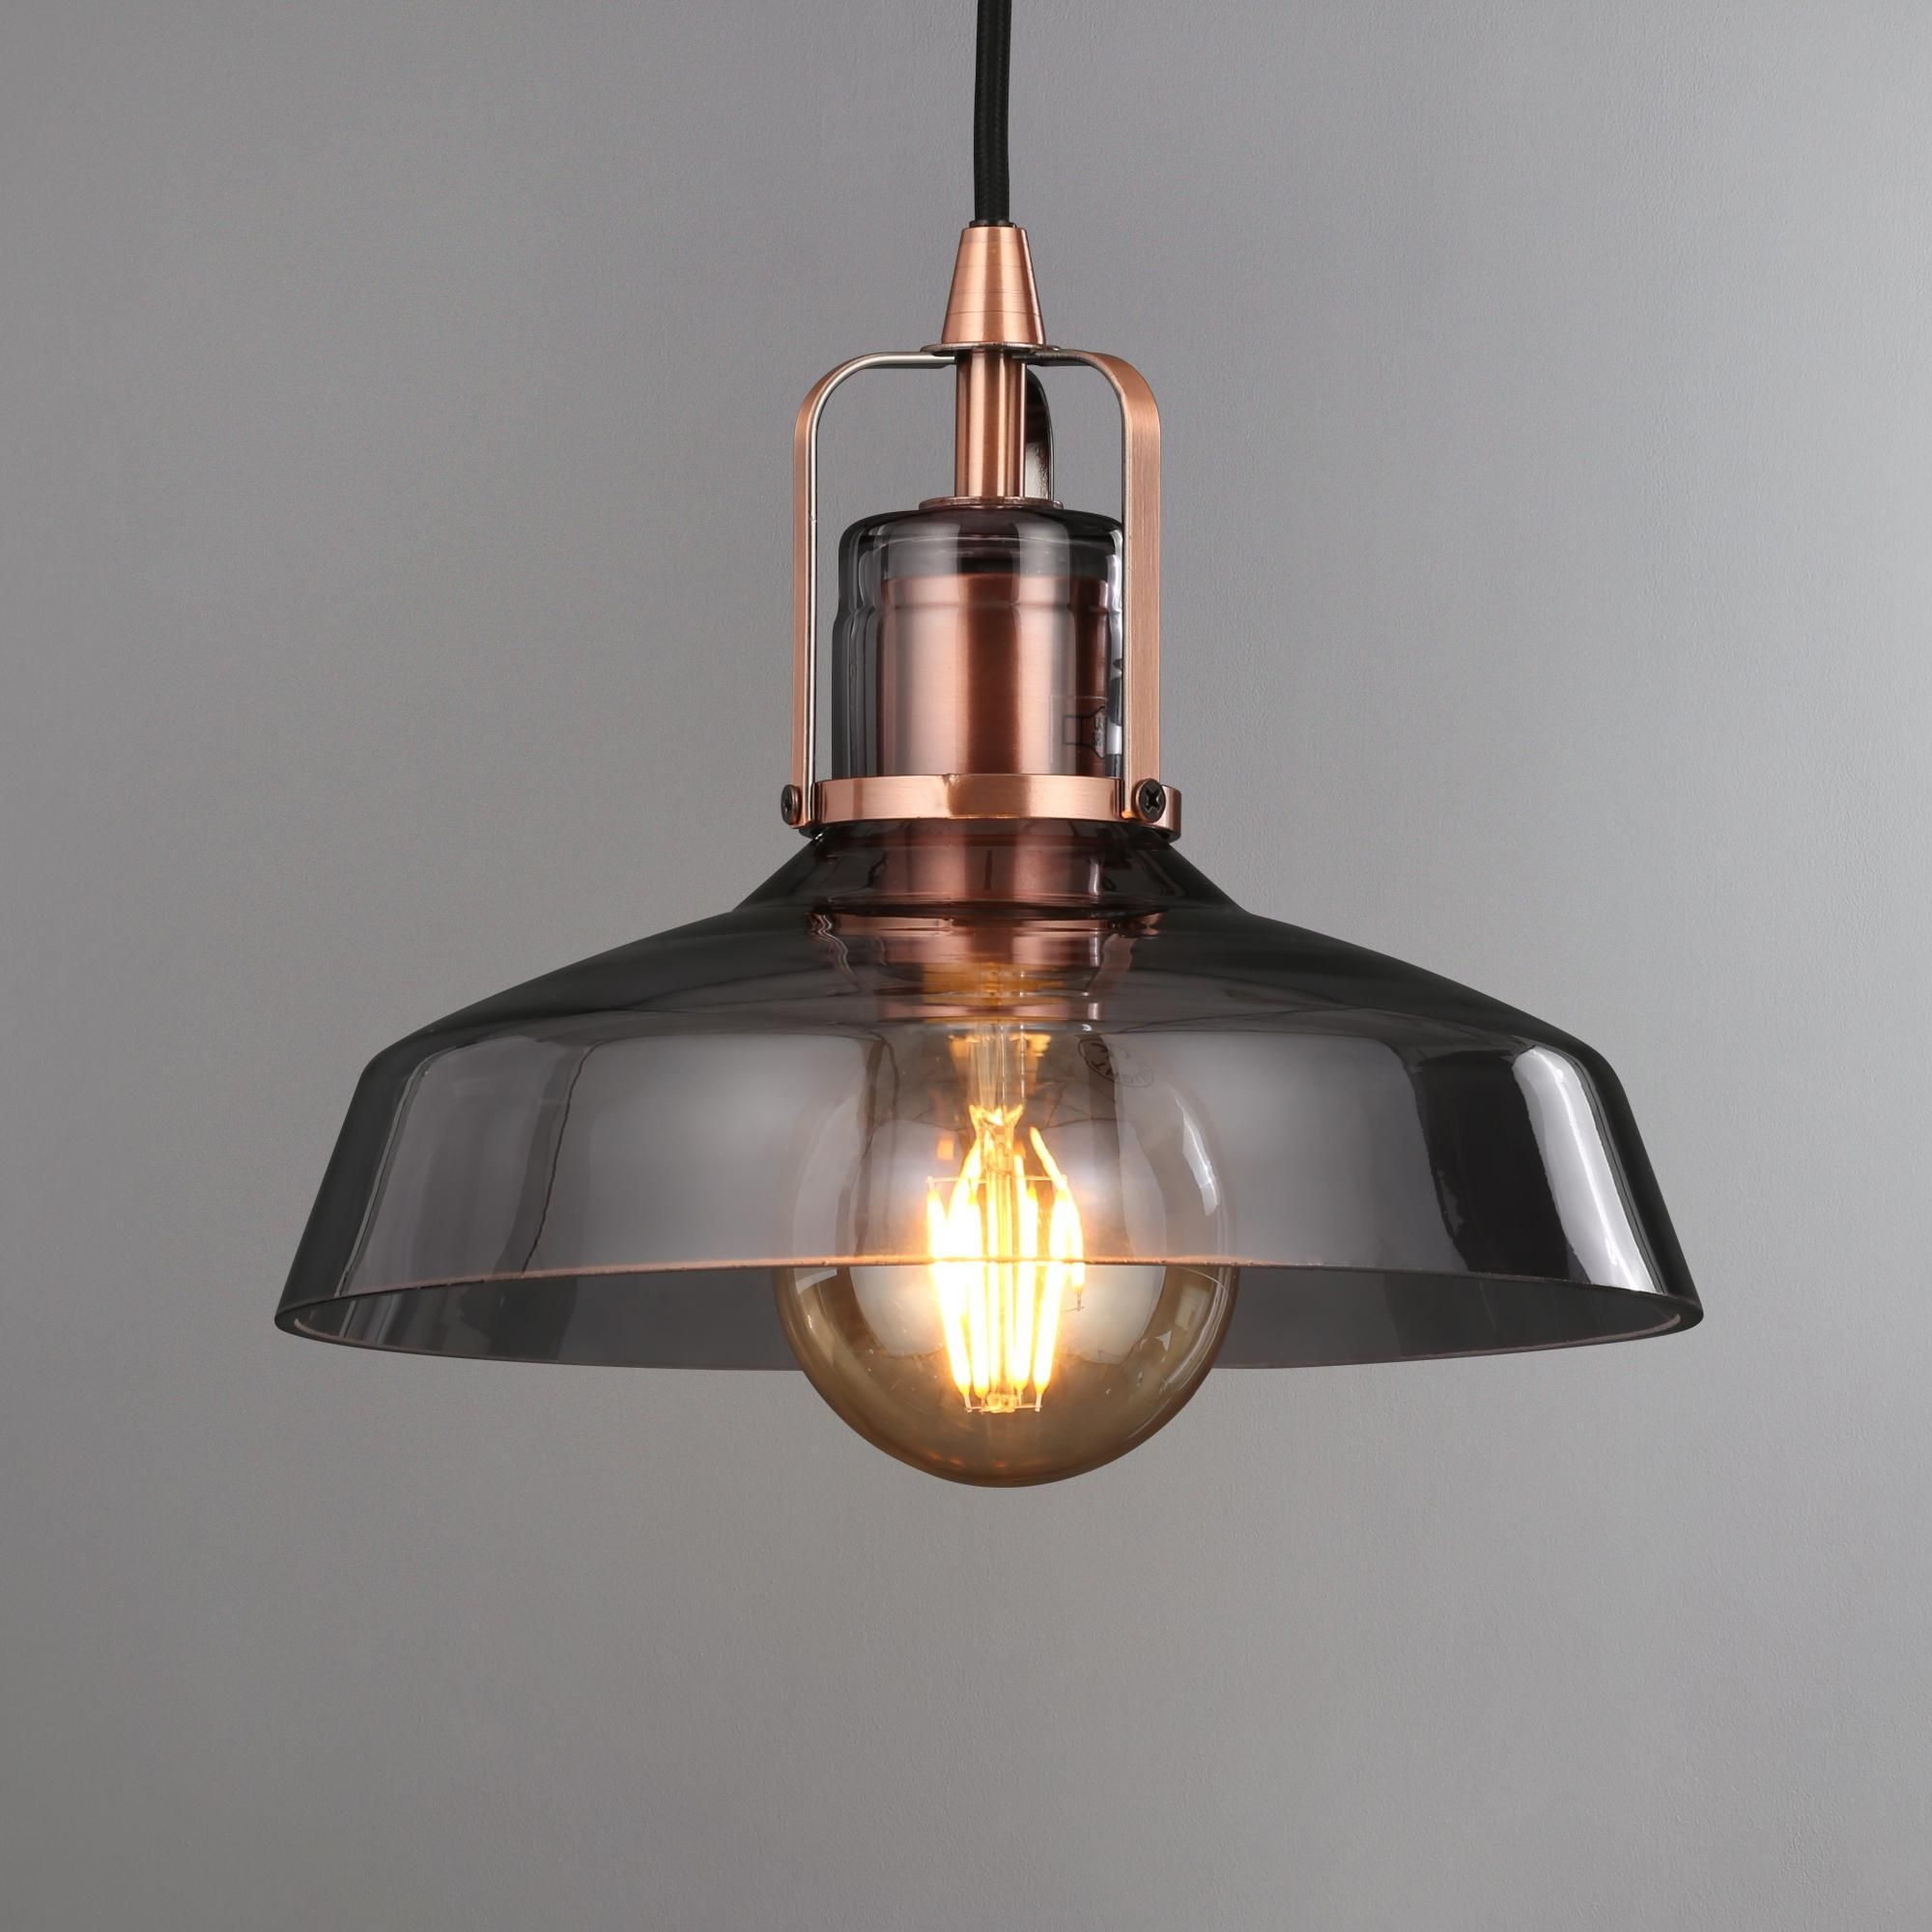 spotlights ceiling lighting led suva smoke glass pendant fitting rh pinterest com